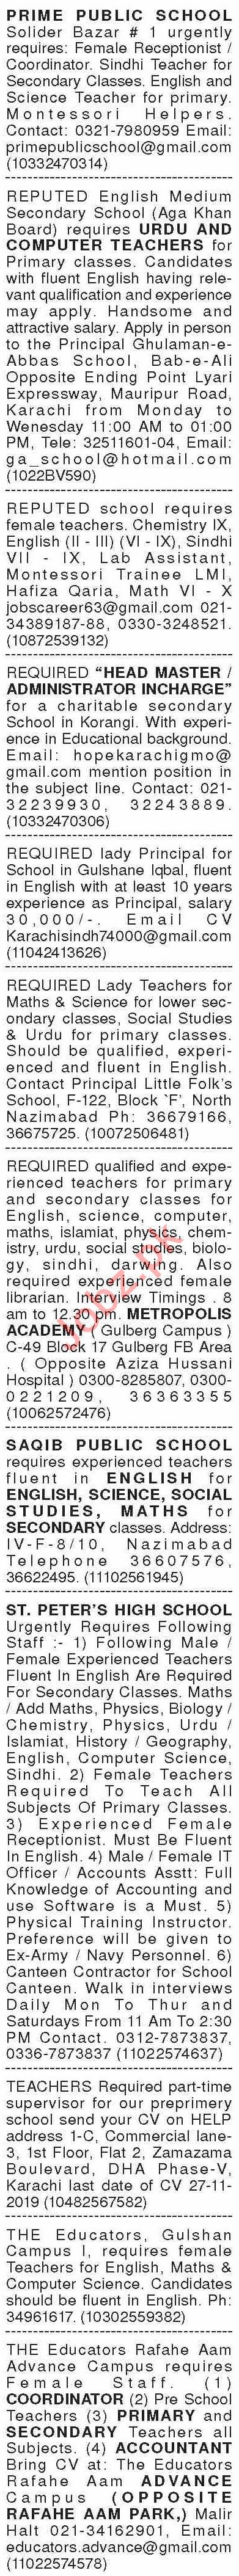 Dawn Sunday Classified Ads 17th Nov 2019 for Teaching Staff